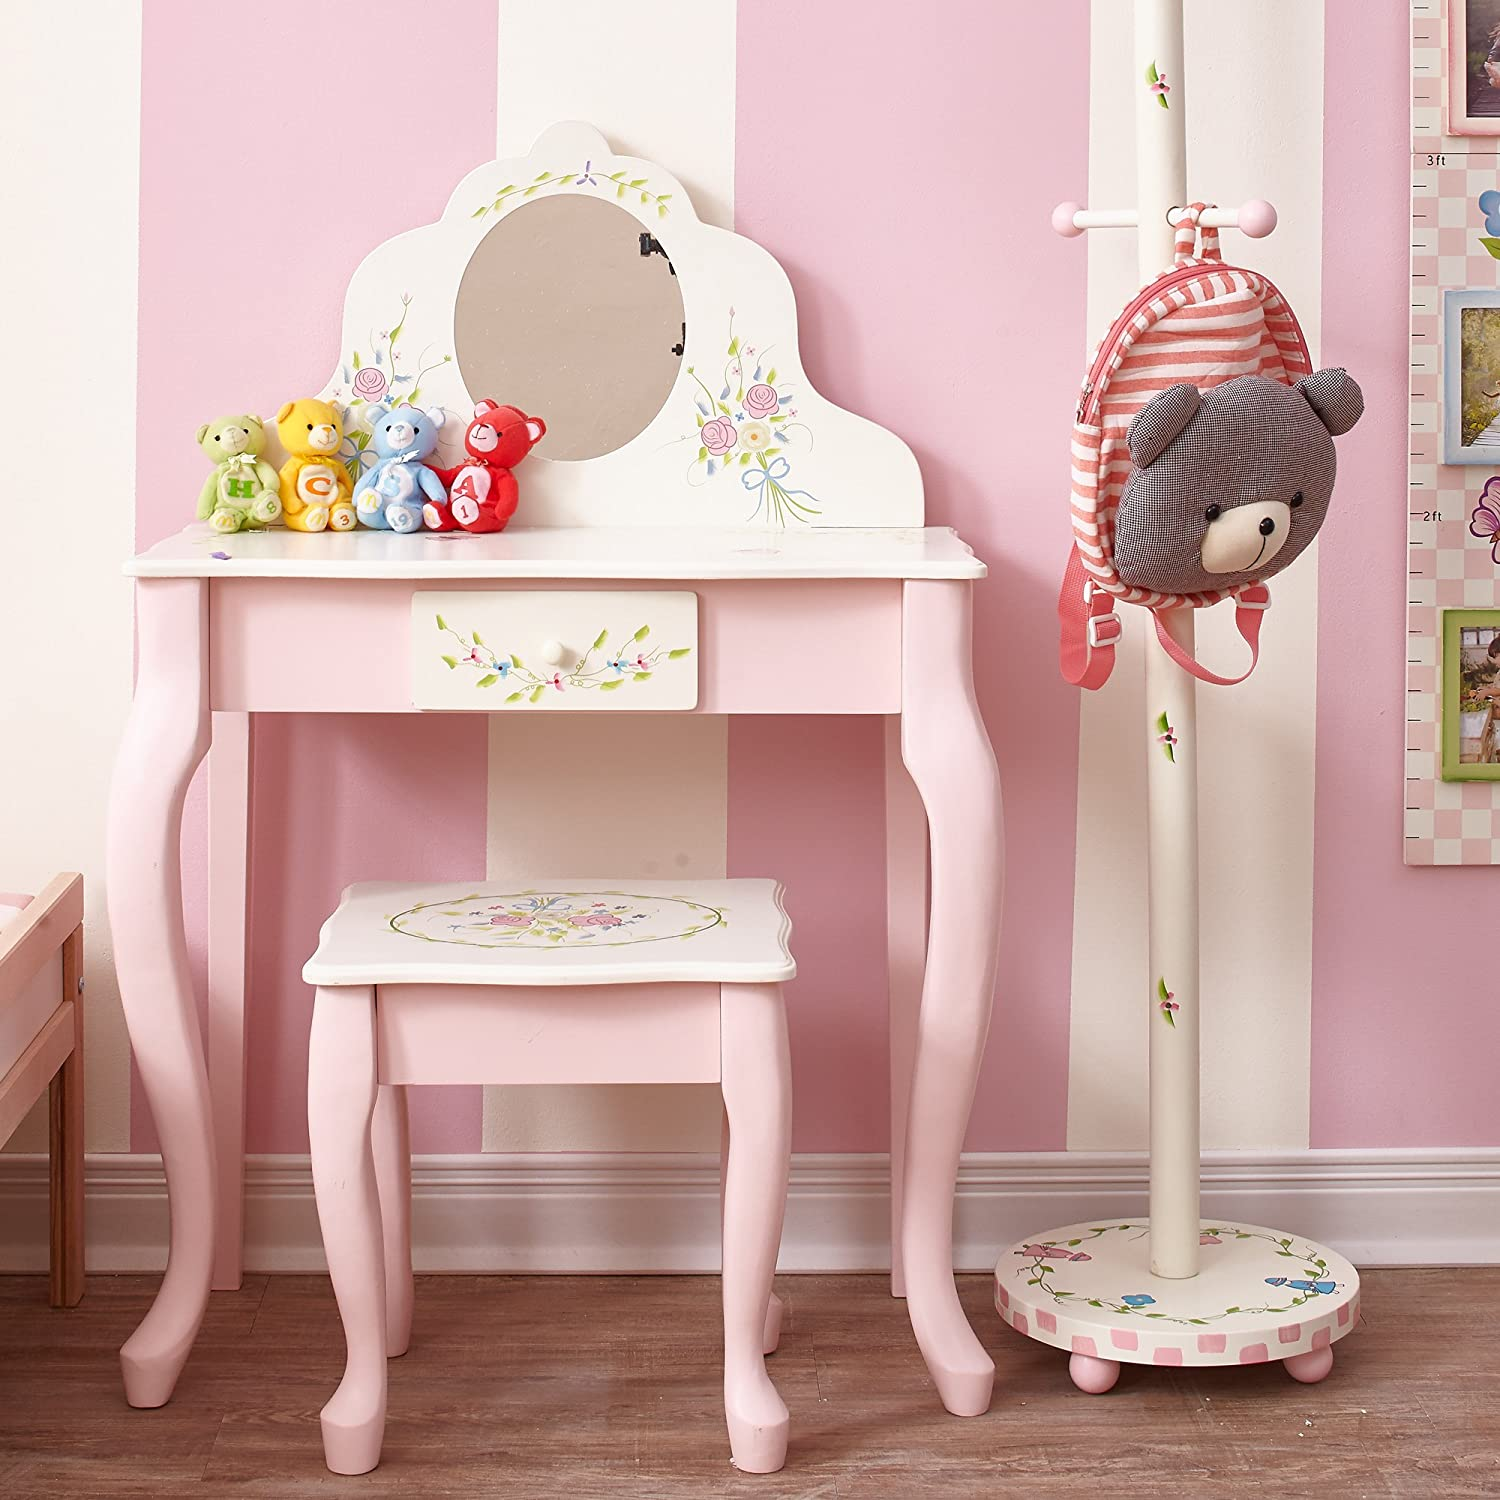 Amazon fantasy fields bouquet thematic kids classic vanity amazon fantasy fields bouquet thematic kids classic vanity table and stool set with mirror imagination inspiring hand crafted hand painted geotapseo Choice Image